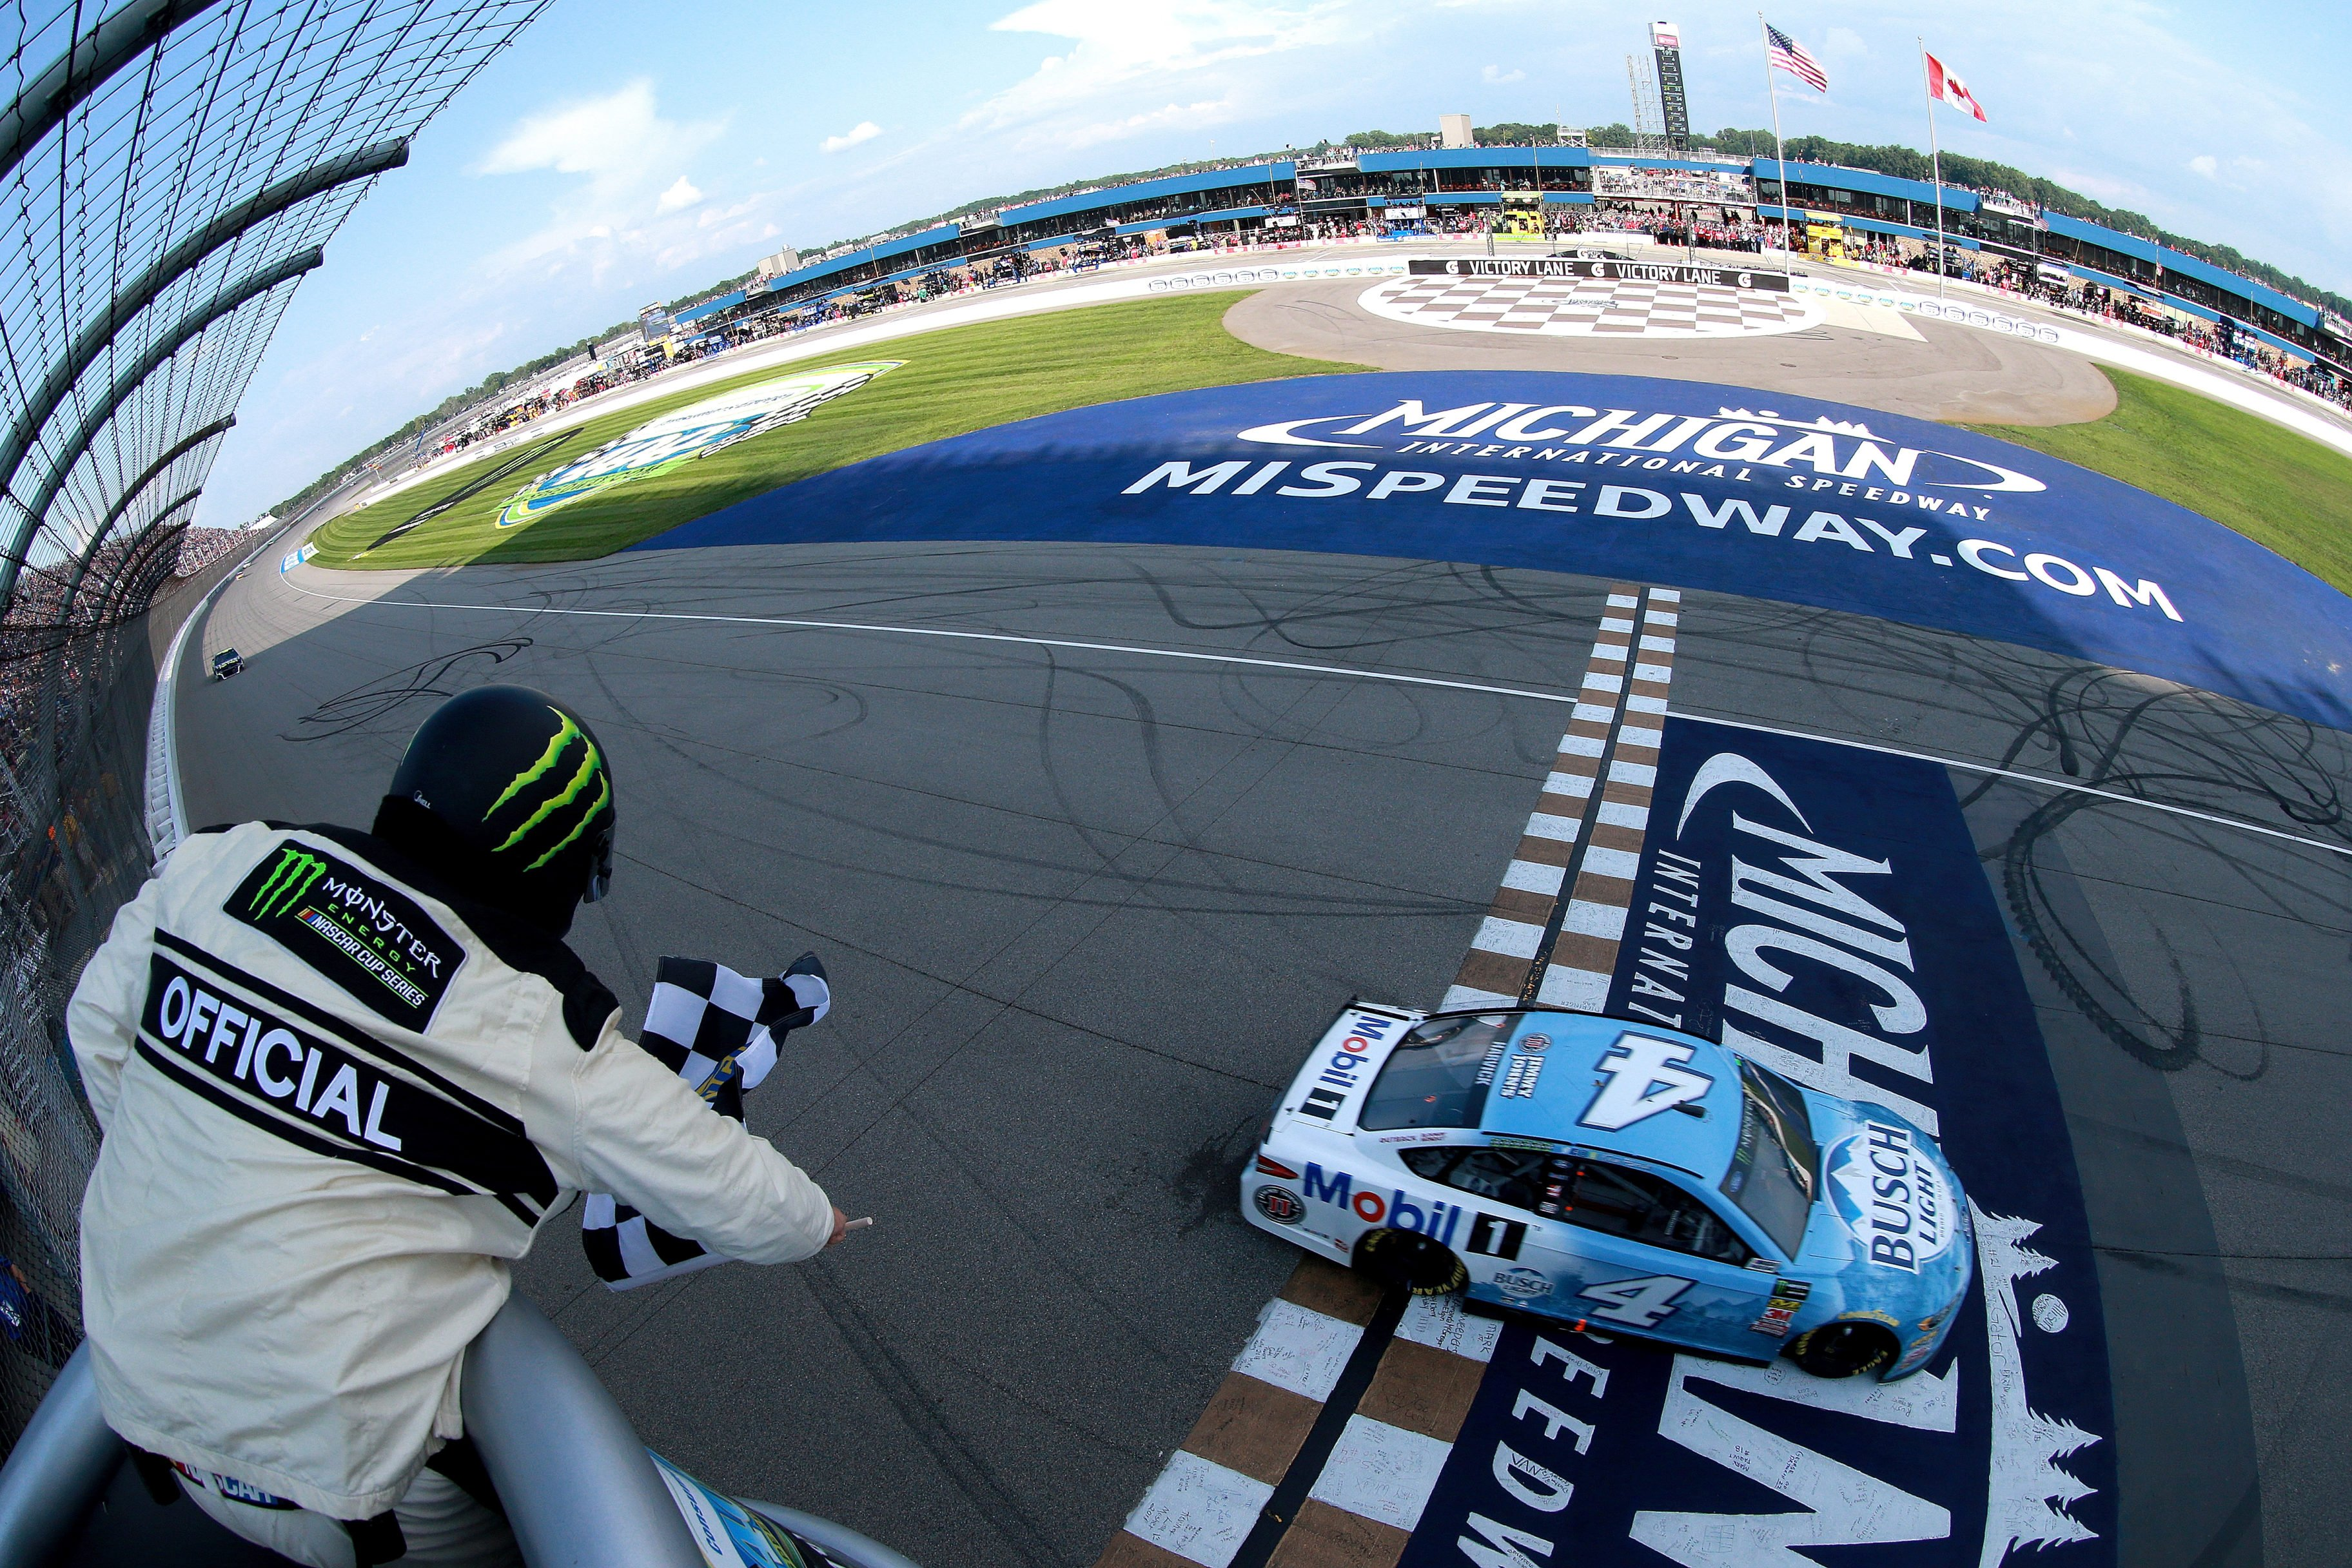 Kevin Harvick wins at Michigan International Speedway